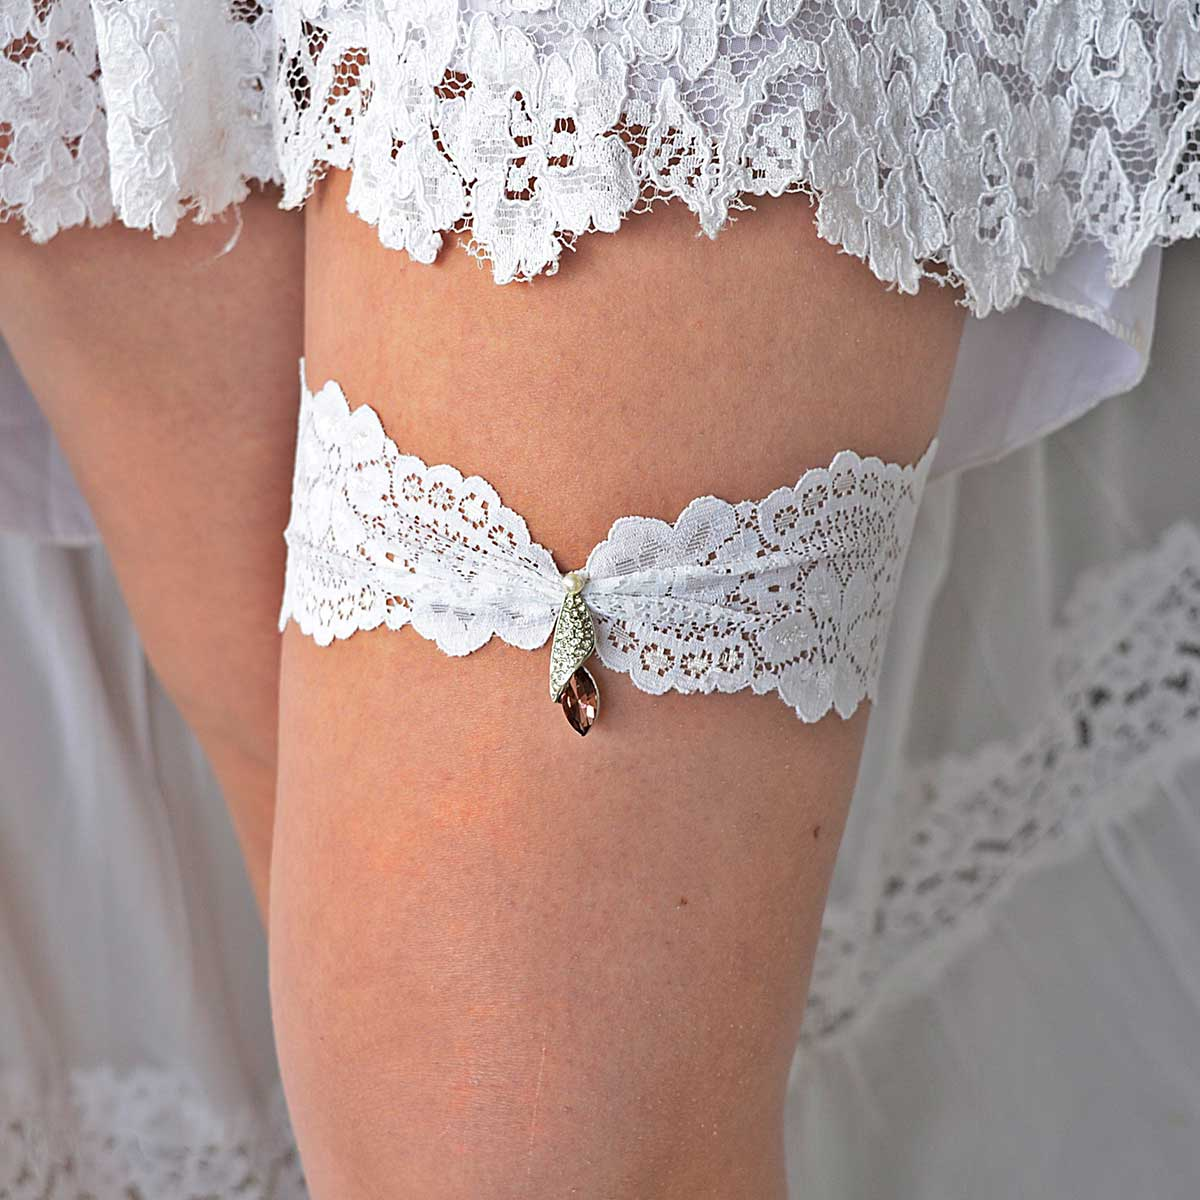 Burgundy Rhinestone Wedding Garter Belt With White Lace